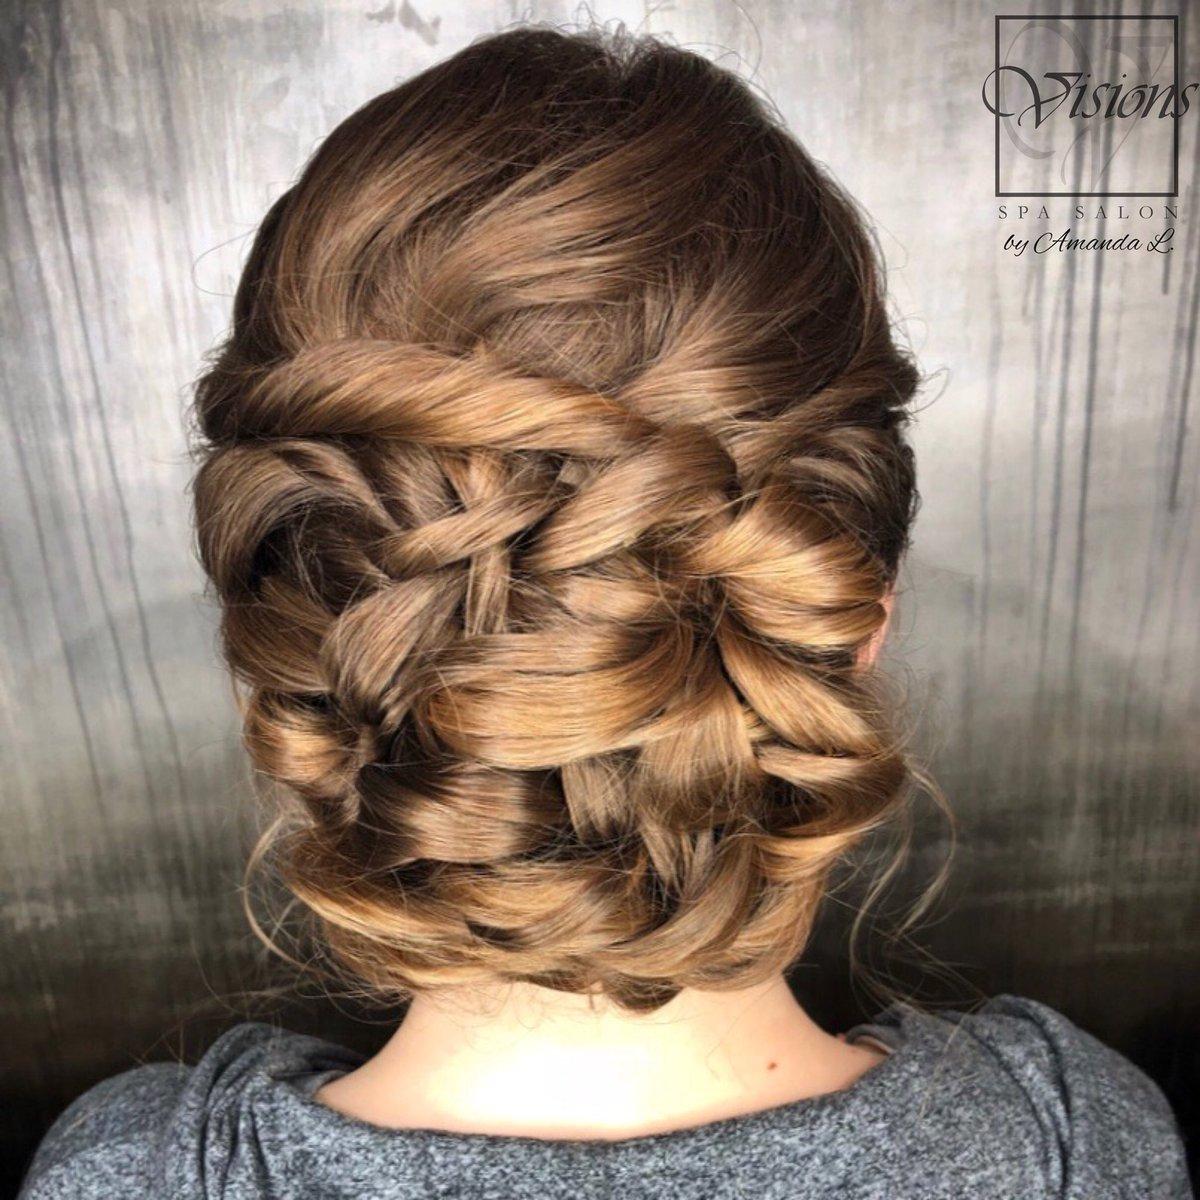 Visions Spa Salon On Twitter Beautiful Prom Hairstyle By Amanda